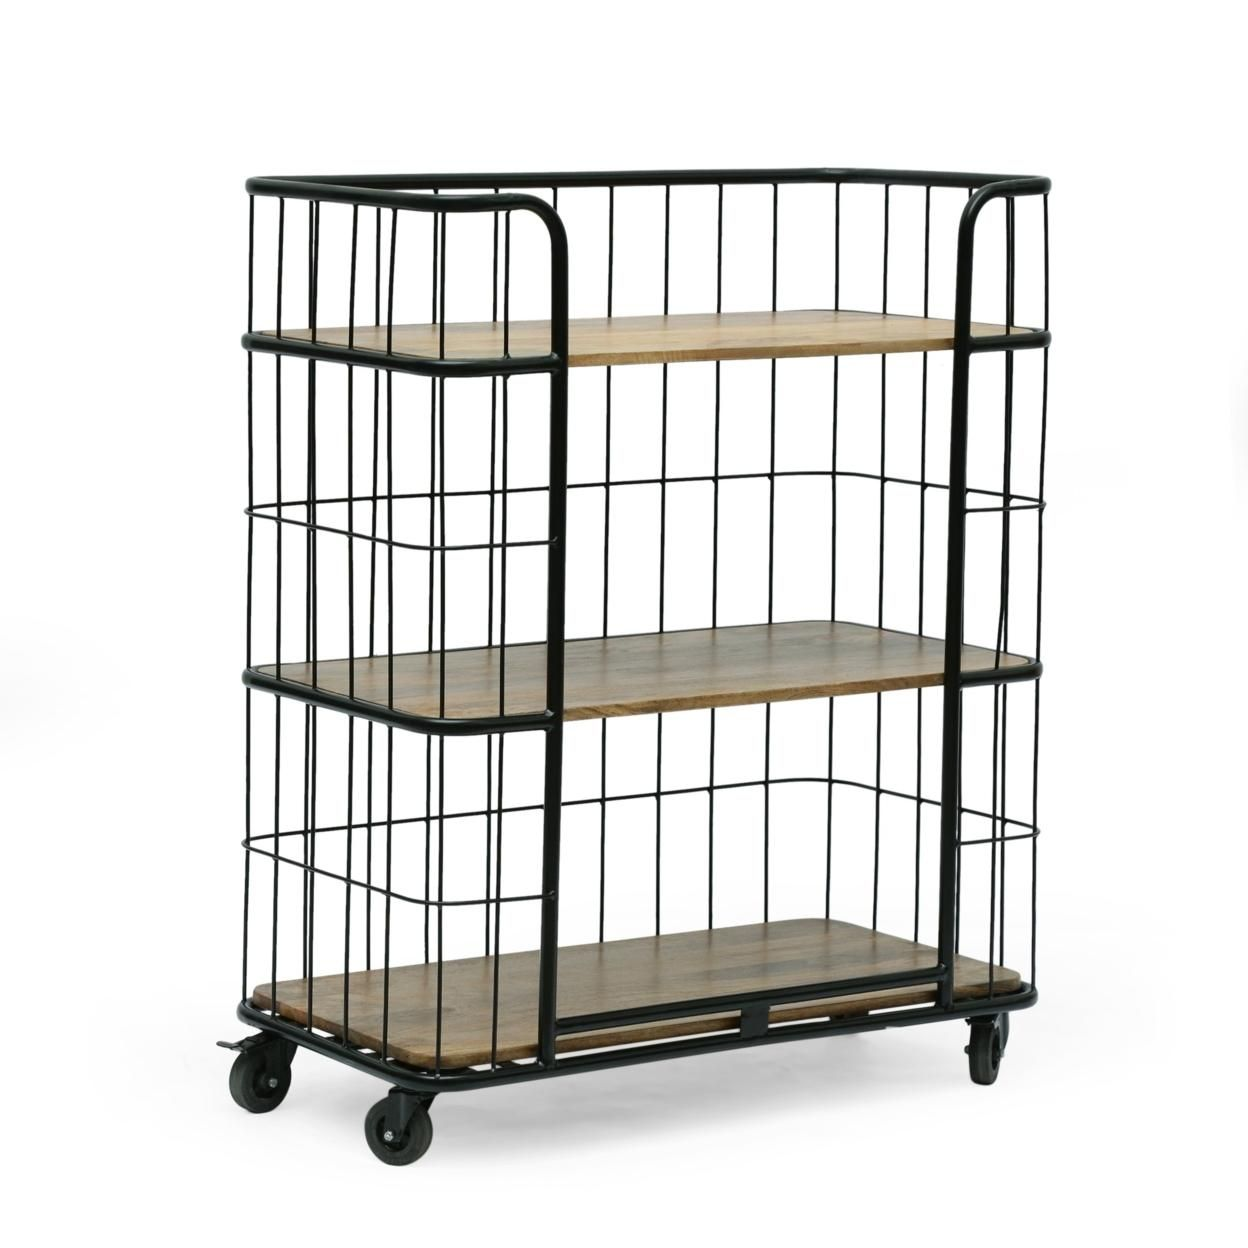 Baddow Modern Industrial Handcrafted Mango Wood Kitchen Cart with Wheels, Natural and Black